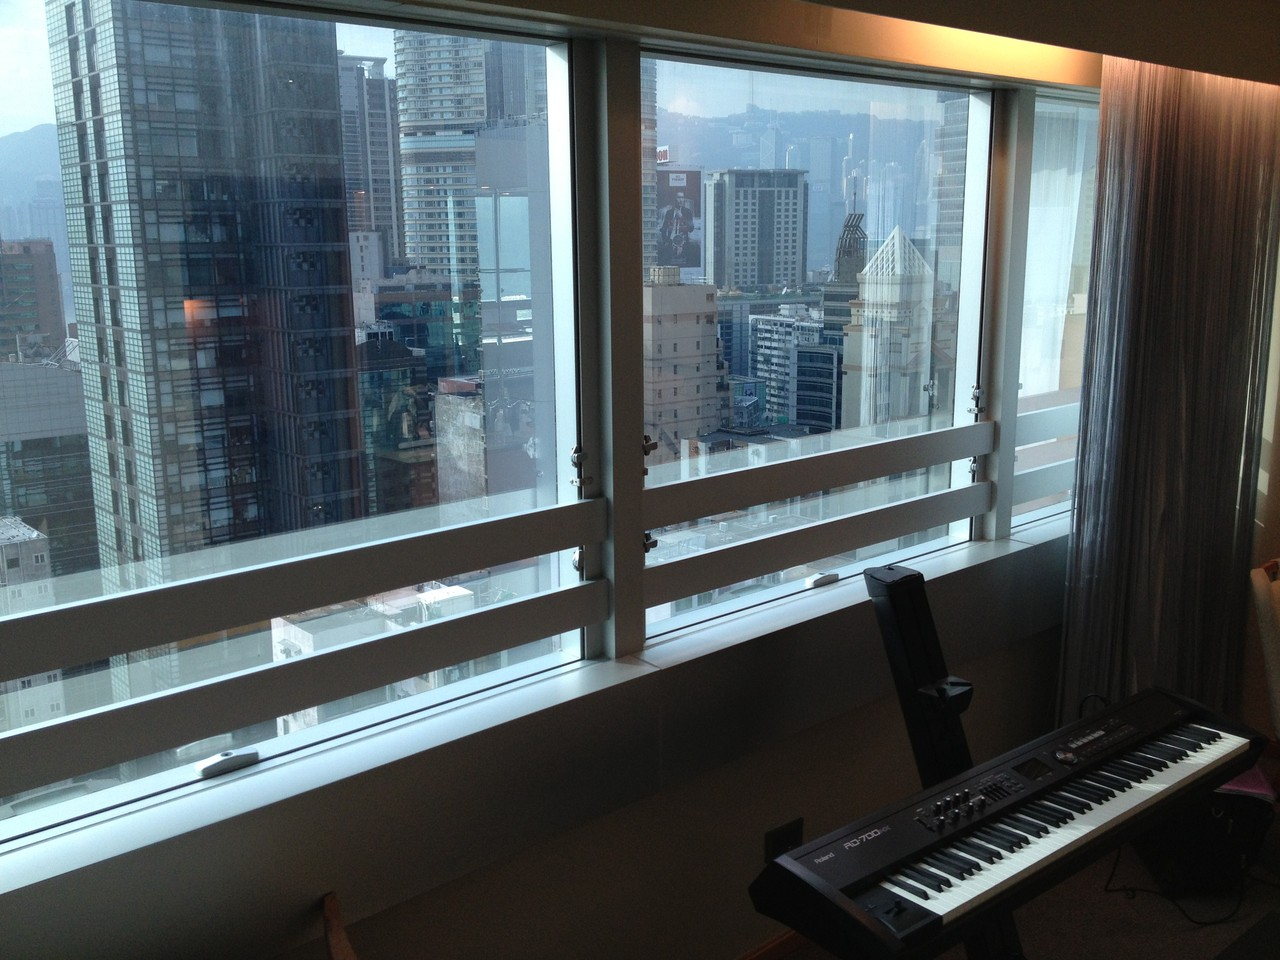 Great view from the hotel room and I've rented a piano so I can work on arrangements .. — at Kowloon.